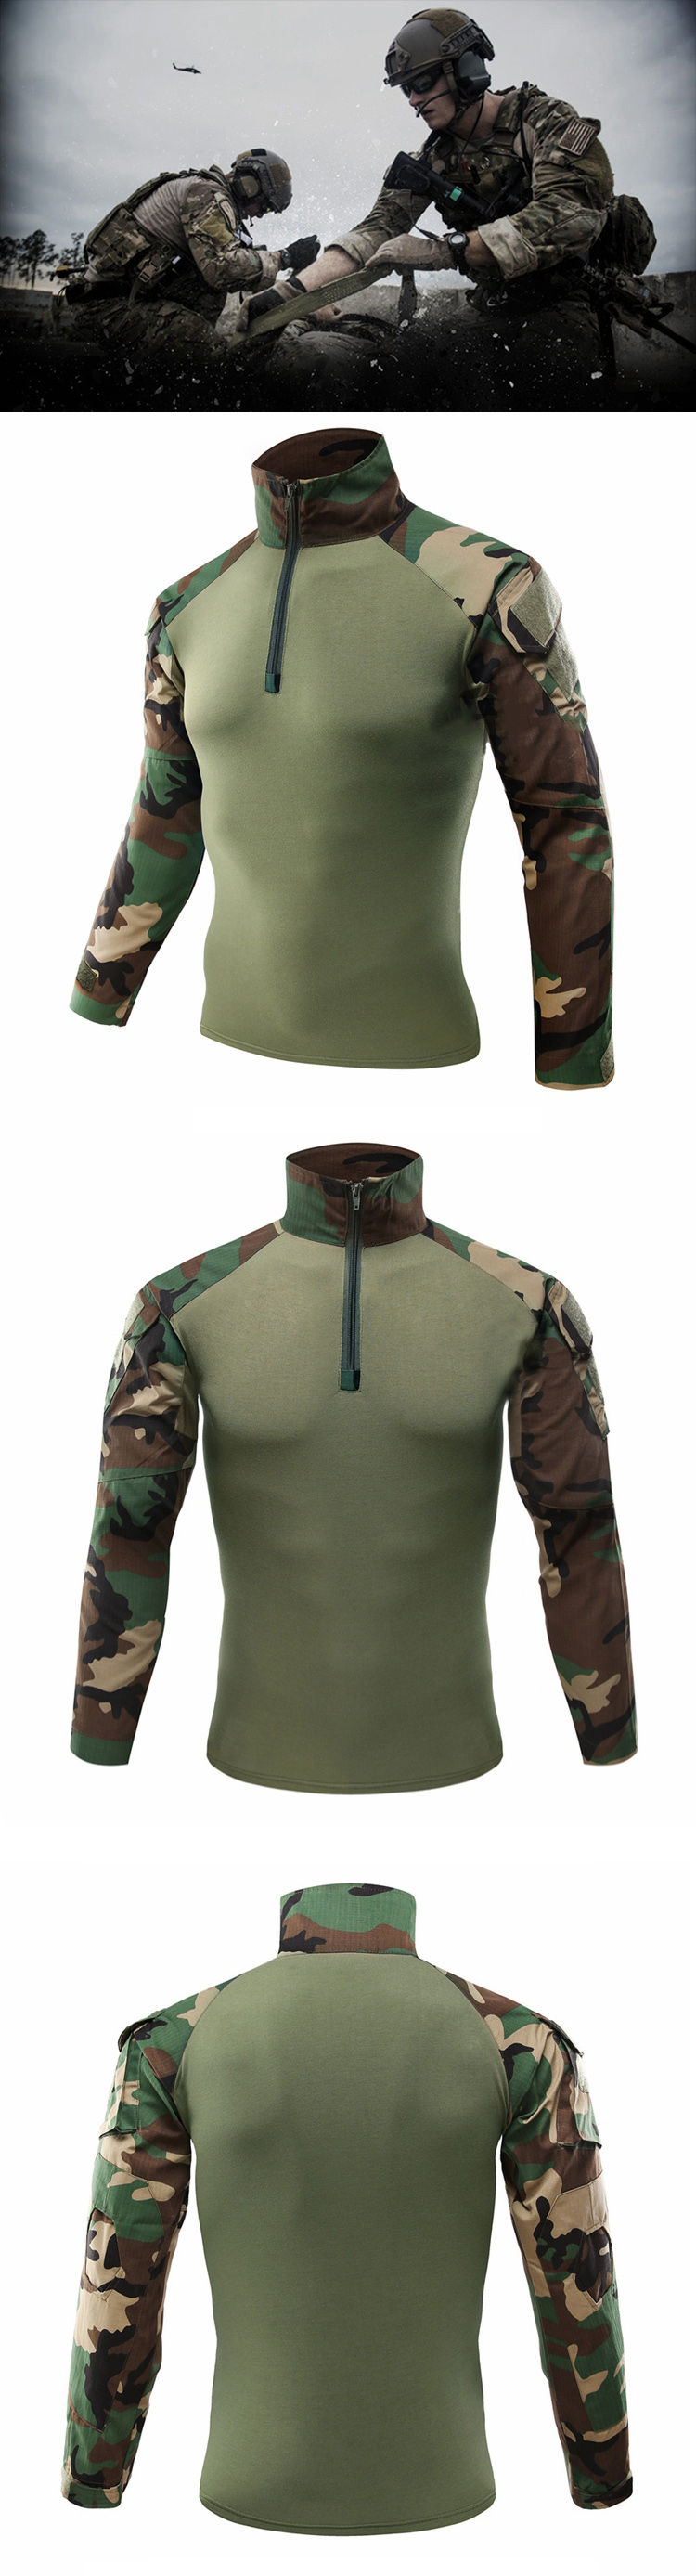 HTB1L8jdcUGF3KVjSZFvq6z nXXaH - Mege Military Shirt Camouflage Army Tactical Battle Combat Shirt Men Women USMC Softair Camisa Militar Special Forces Costume